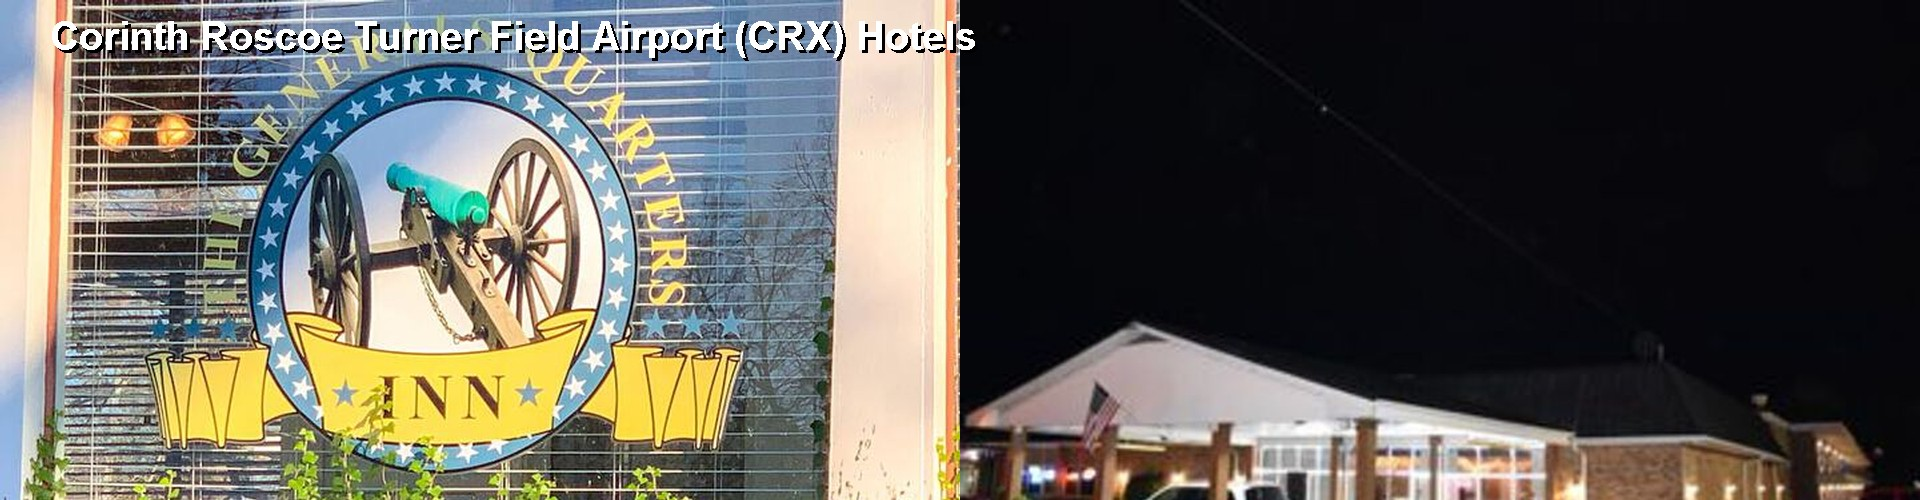 5 Best Hotels near Corinth Roscoe Turner Field Airport (CRX)